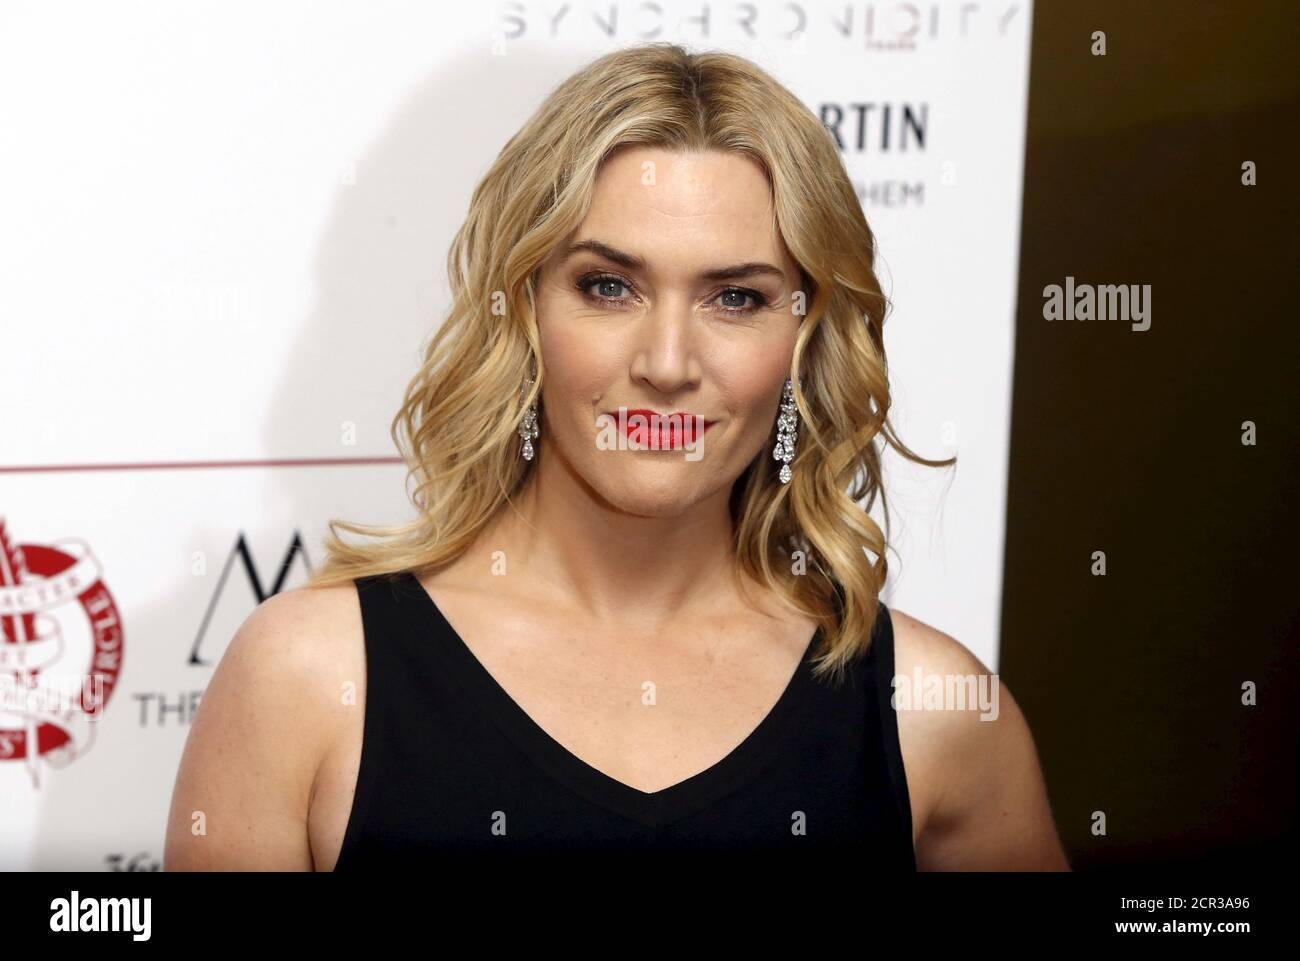 British actress Kate Winslet poses for photographers at the 36th London Critics' Circle Film Awards in London, Britain January 17, 2016. REUTERS/Neil Hall Stock Photo